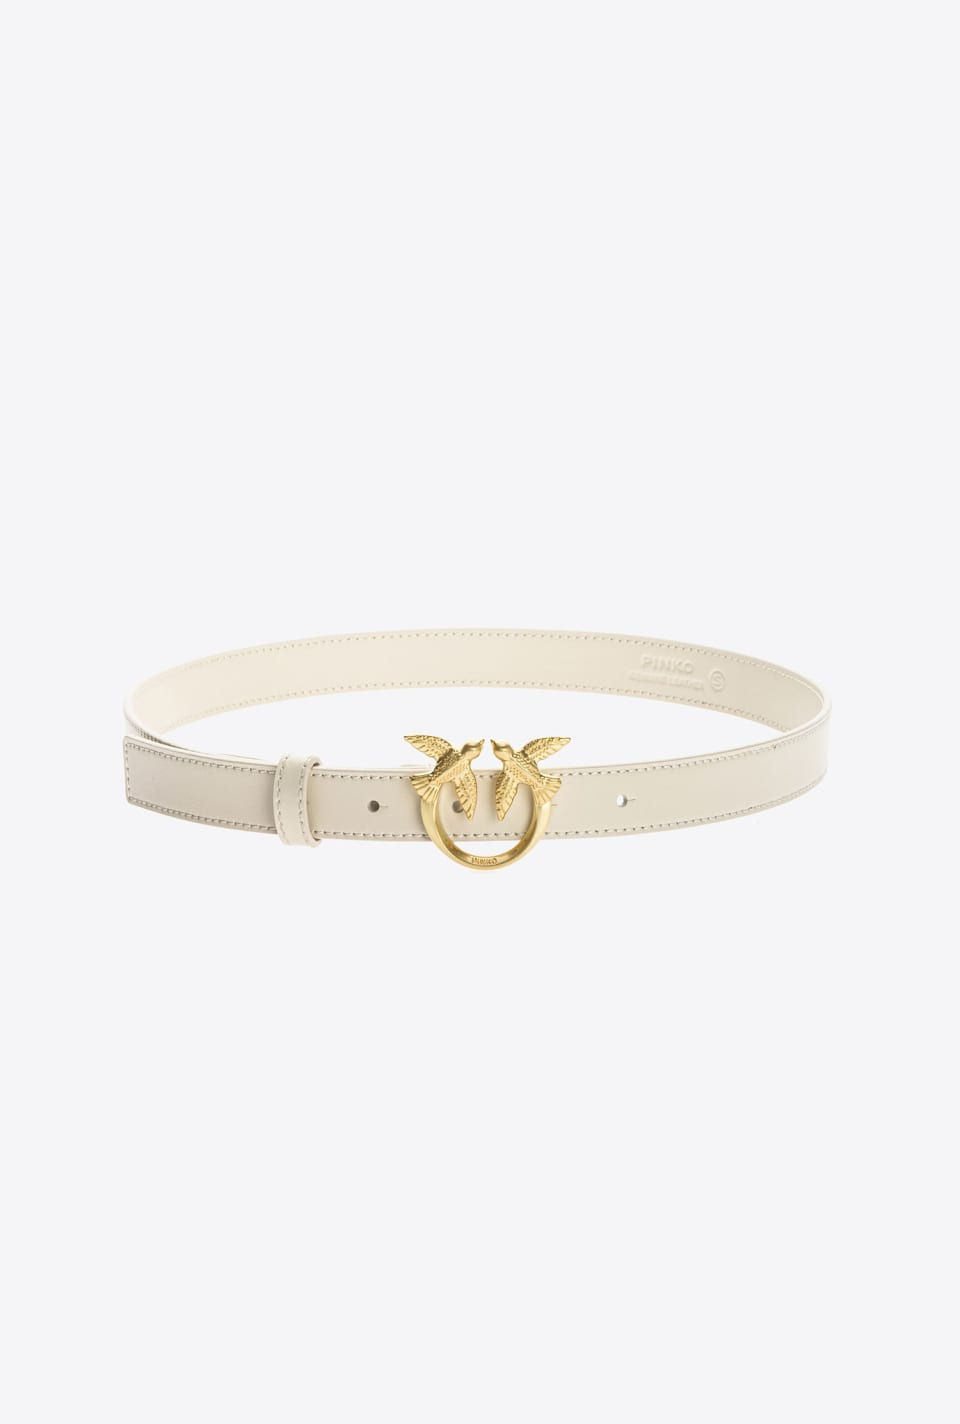 High-waist narrow Love Birds belt - Pinko